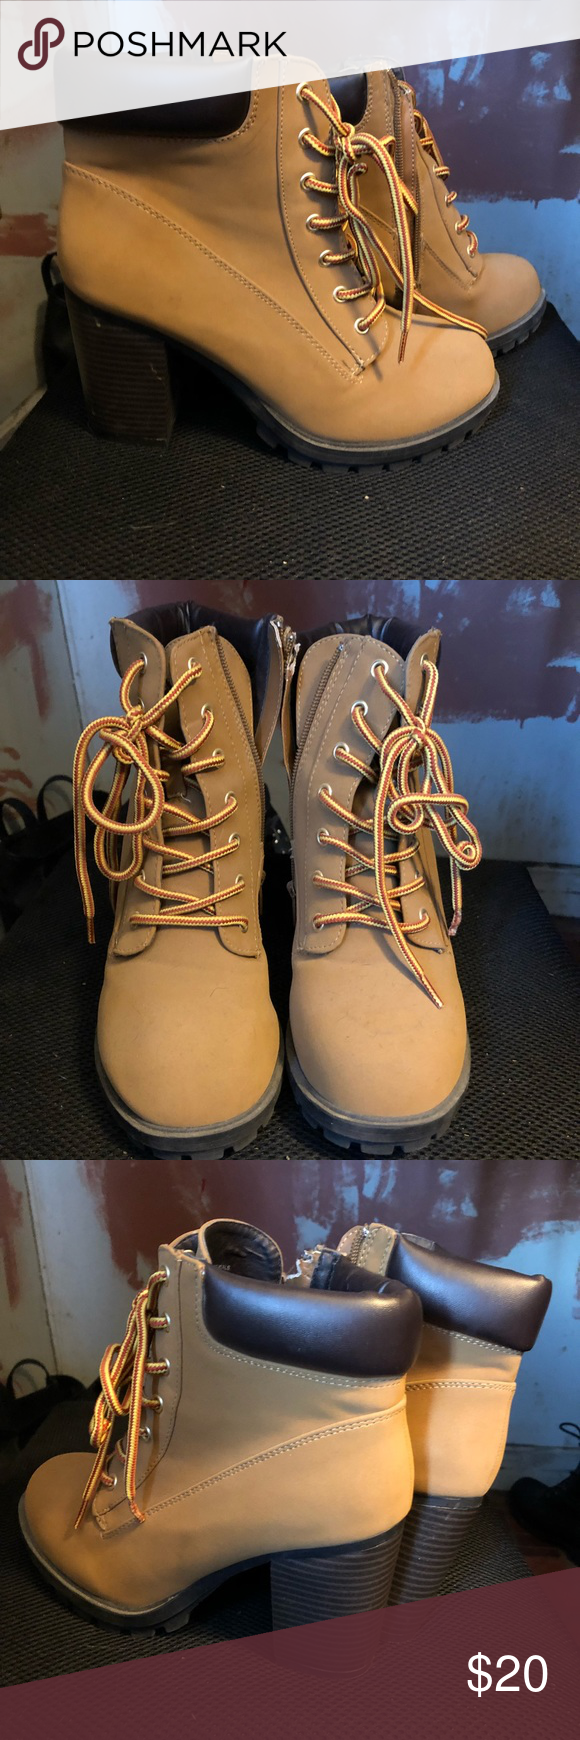 Charlotte Reusse High Heel Work Boot Brand: Charlotte Reusse Size: 8 (I usually wear a 7-7.5 and they fit perfectly)  Condition: Brand New (few scuff marks from being stored shown in pictures) Charlotte Russe Shoes Ankle Boots & Booties